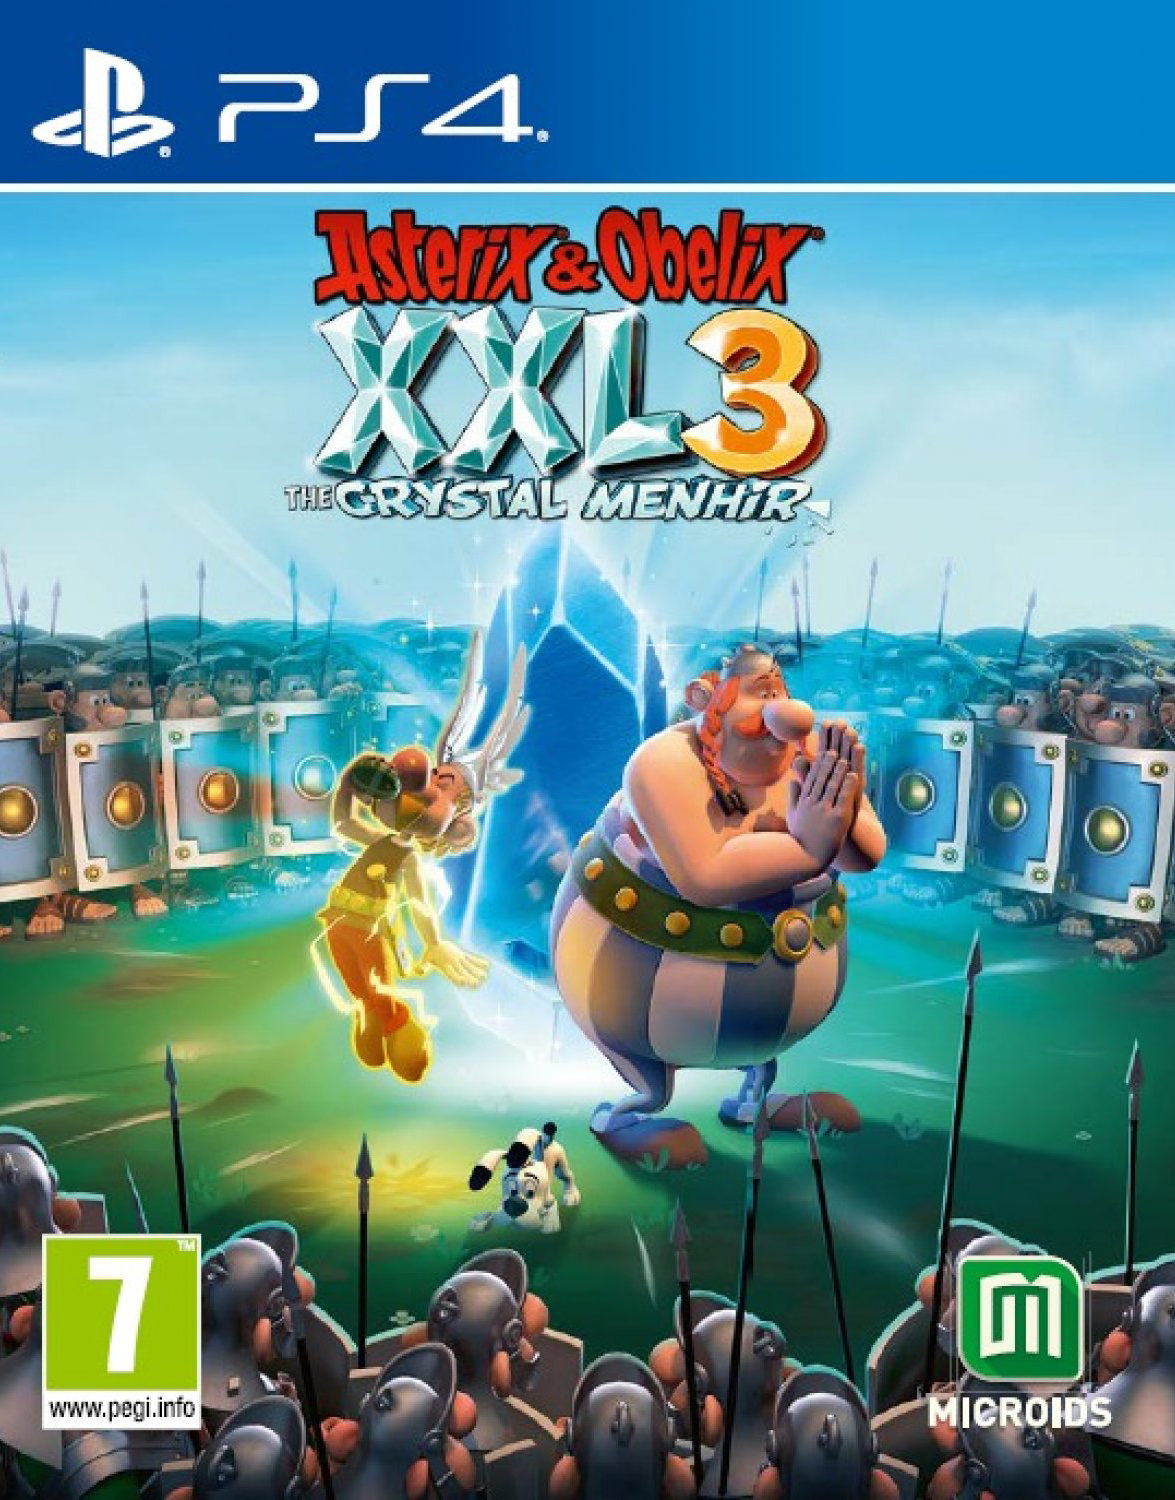 Asterix & Obelix XXL3: The Crystal Menhir [PS4] 5.05 / 6.72 / 7.02 [EUR] (2019) [Русский] (v1.05)